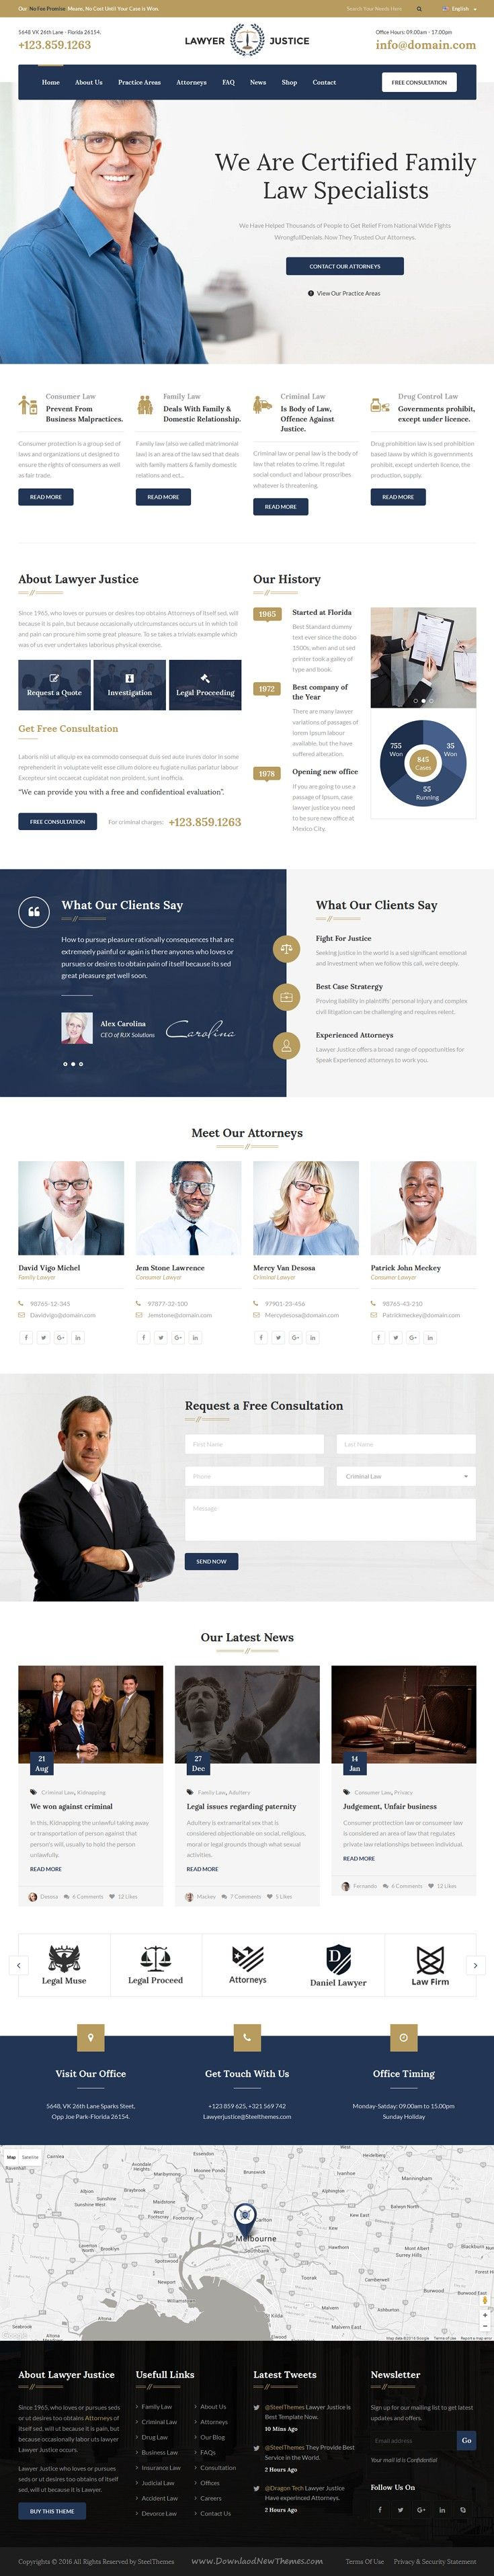 Lawyer Justice Is Beautiful Bootstrap Template Built For Legal Advisers Lawyers Attorneys Lawyer Website Design Web Layout Design Website Design Inspiration